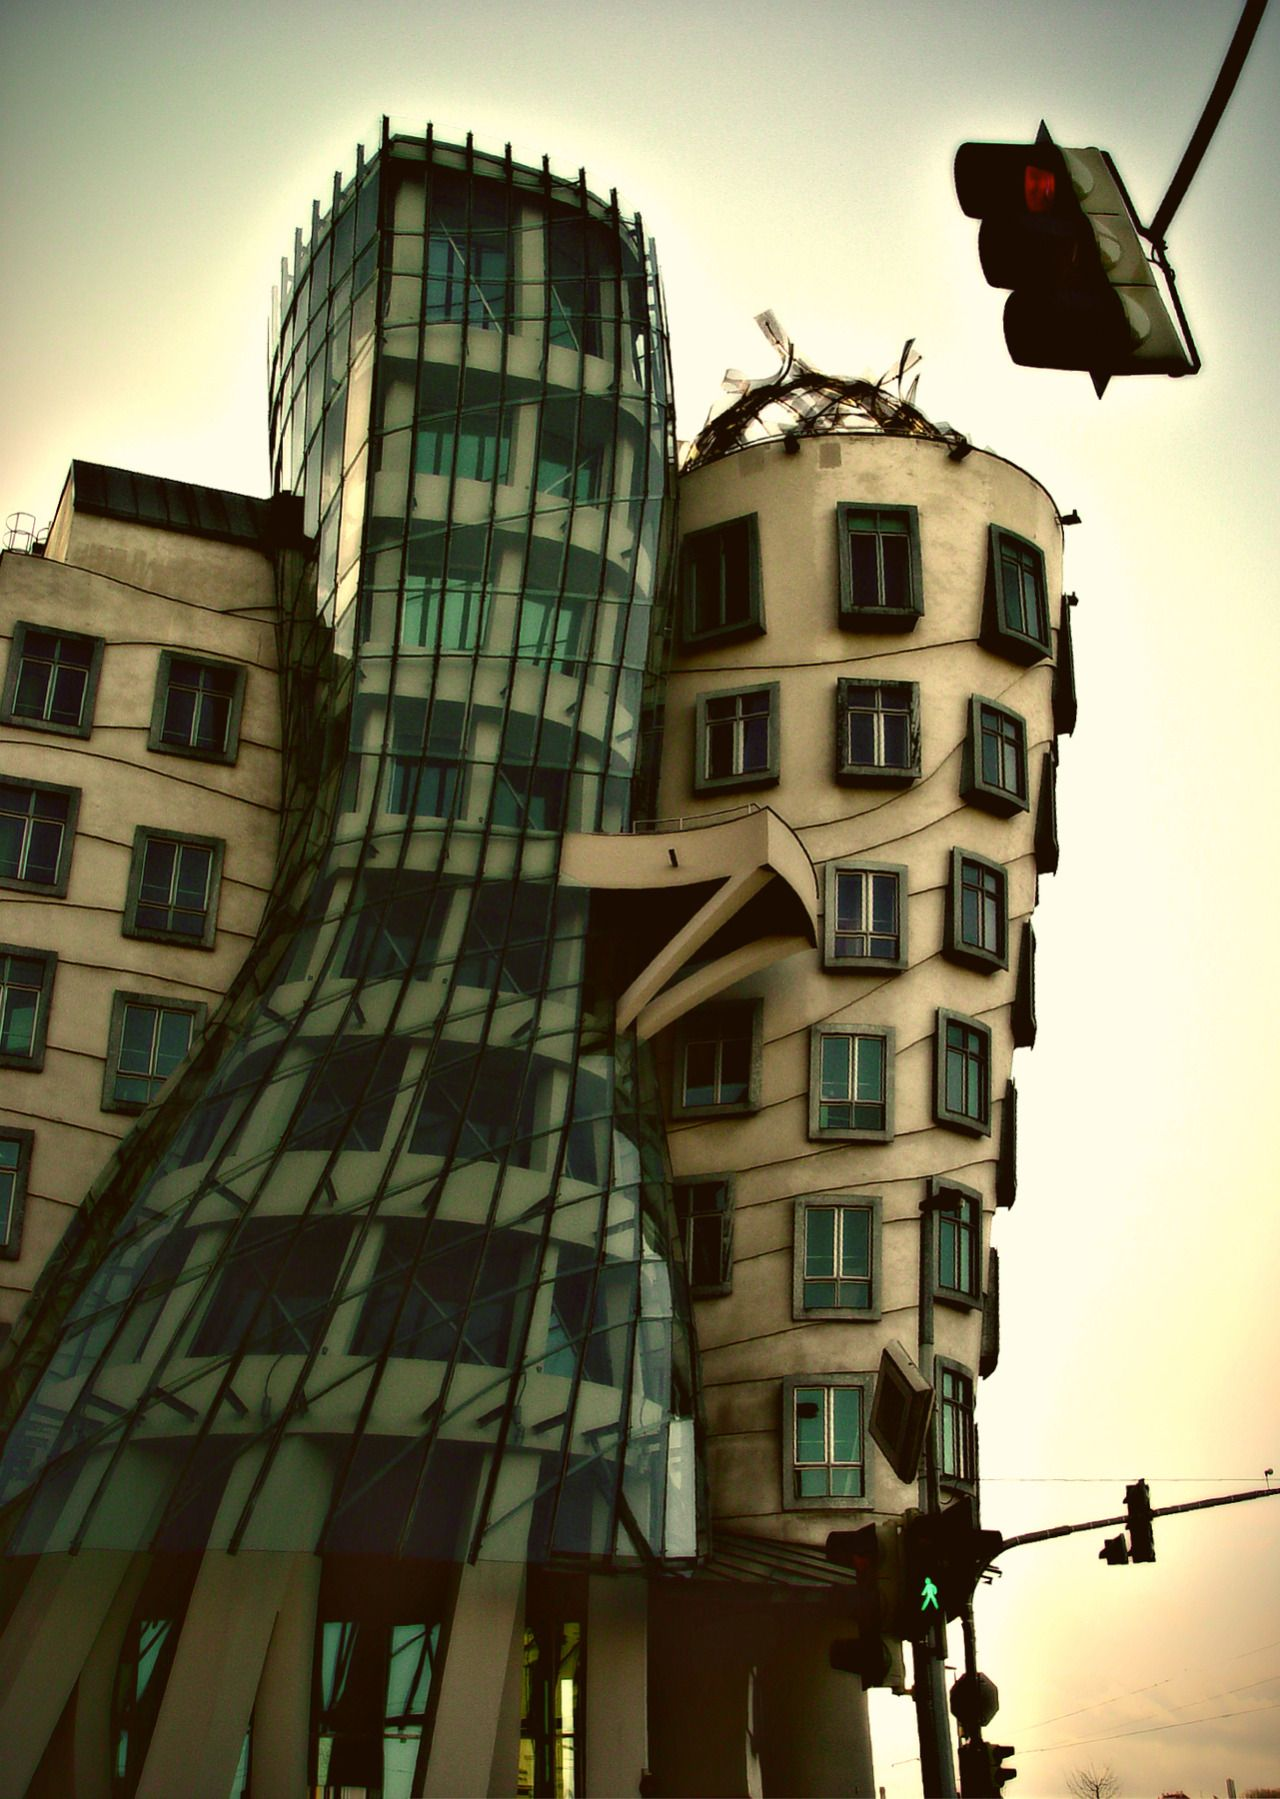 ybb55:   dancing House Vlad Sidorak - Out the Front Window